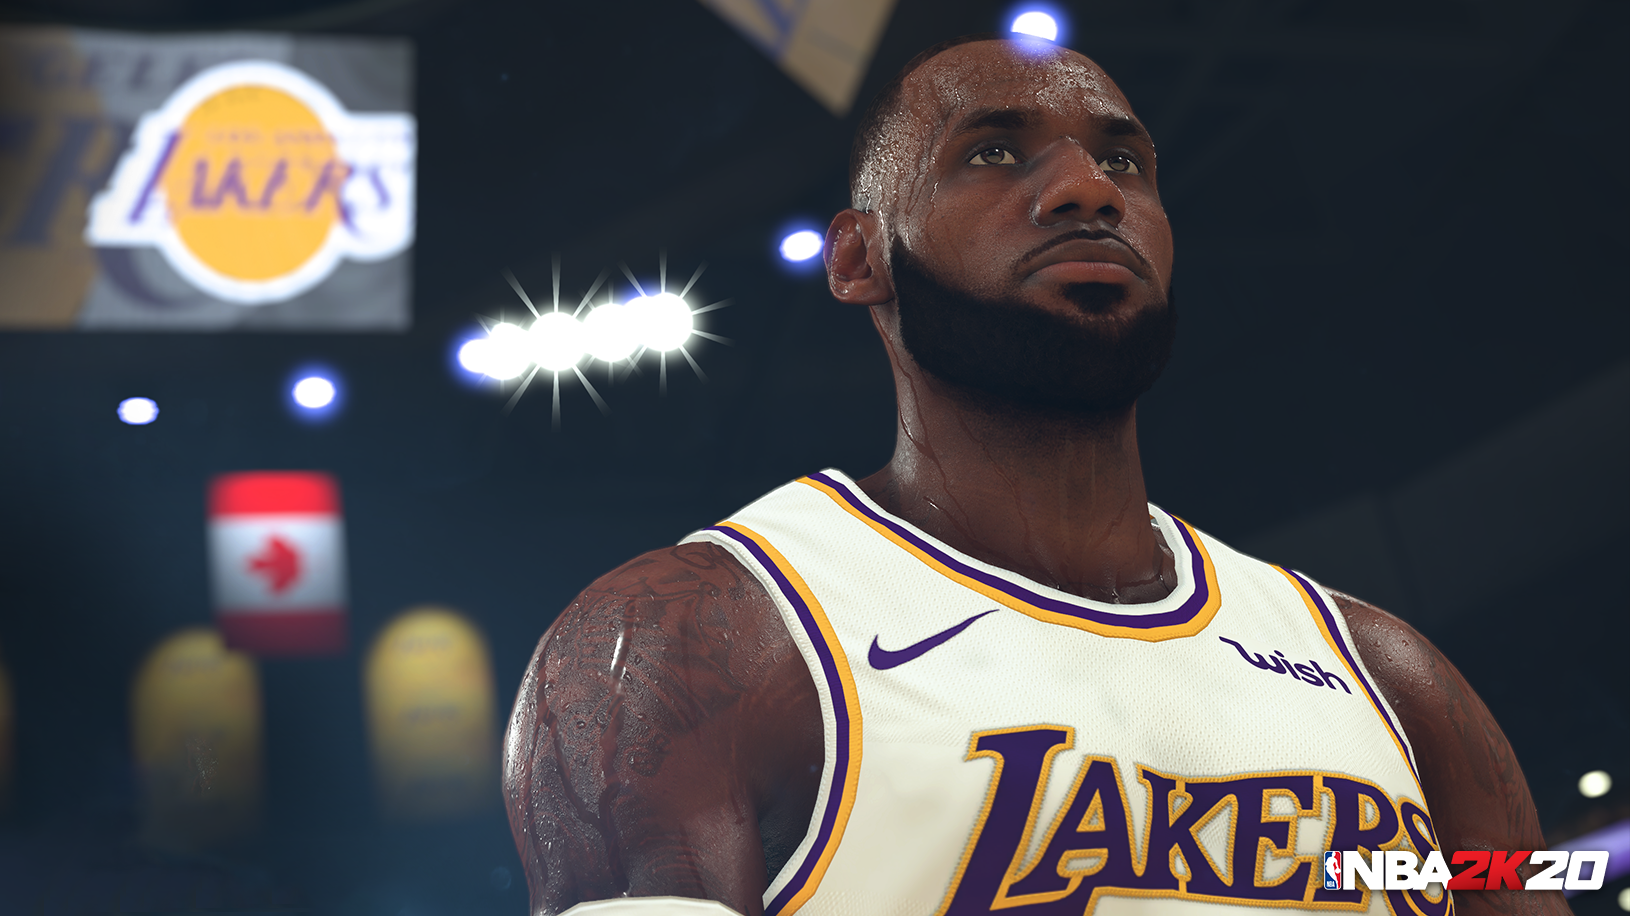 NBA 2K20 season simulation results are in with a new champion crowned